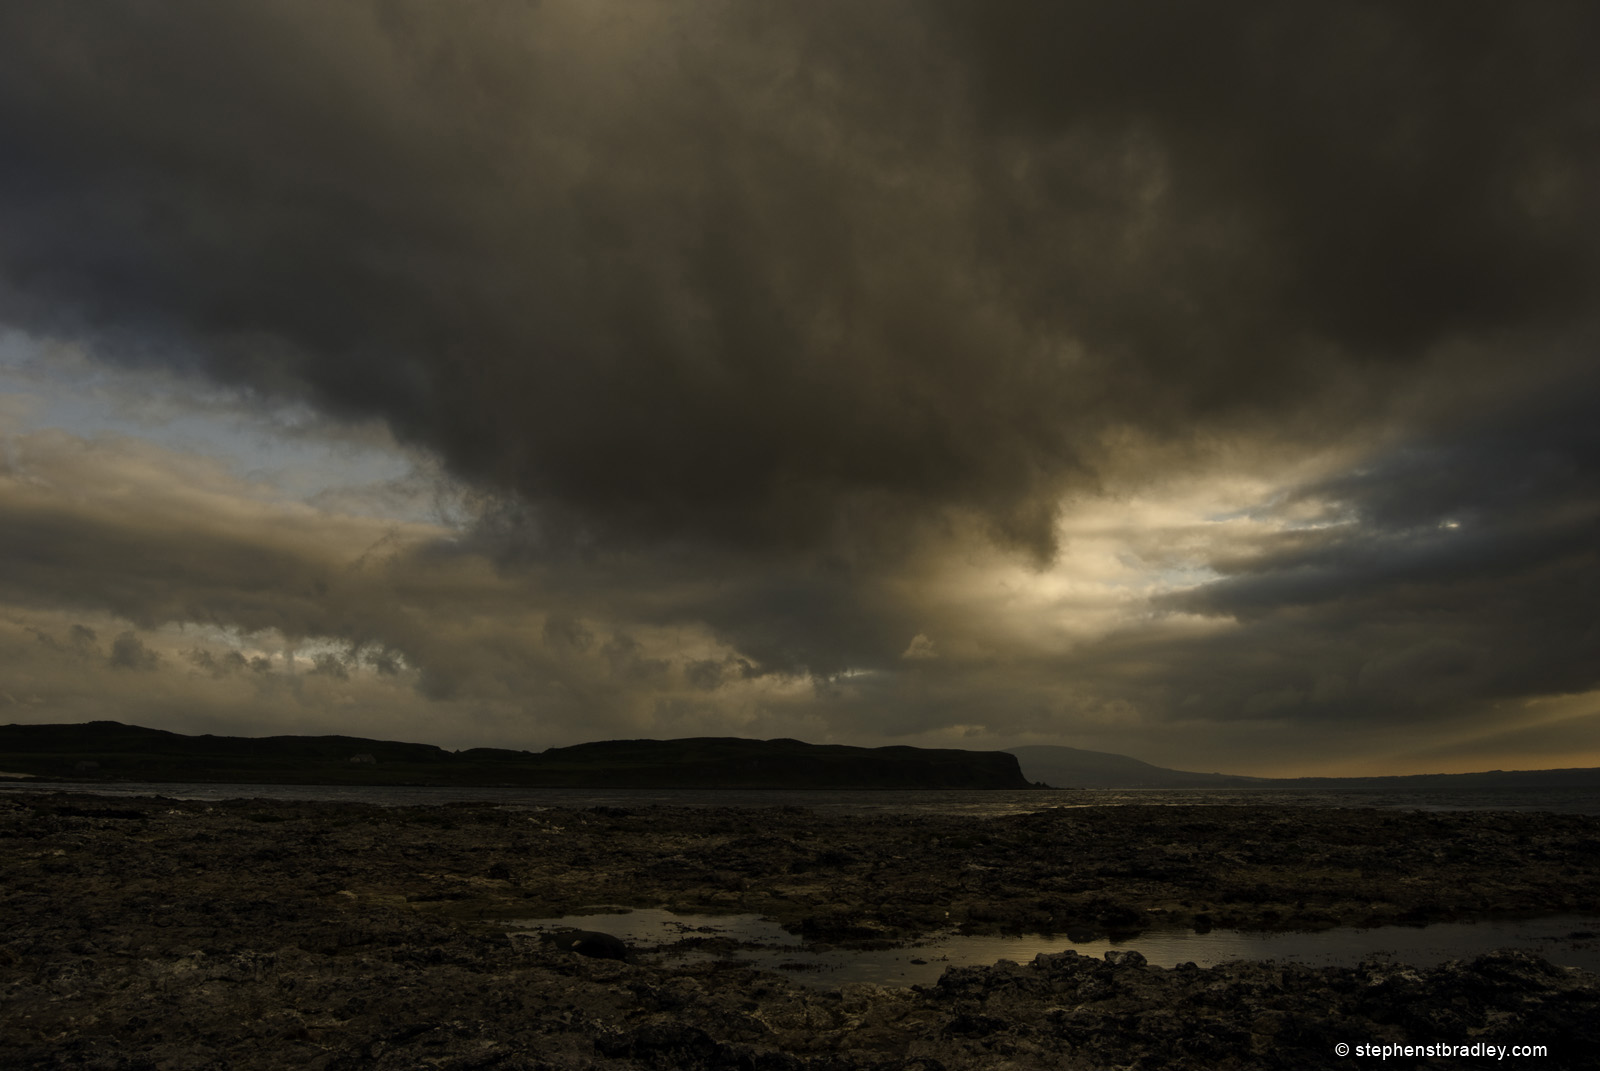 Rathlin Island Northern Ireland, showing the south peninsula photographed from Church Bay at sunset by landscape photographer Stephen S T Bradley - image 4075.